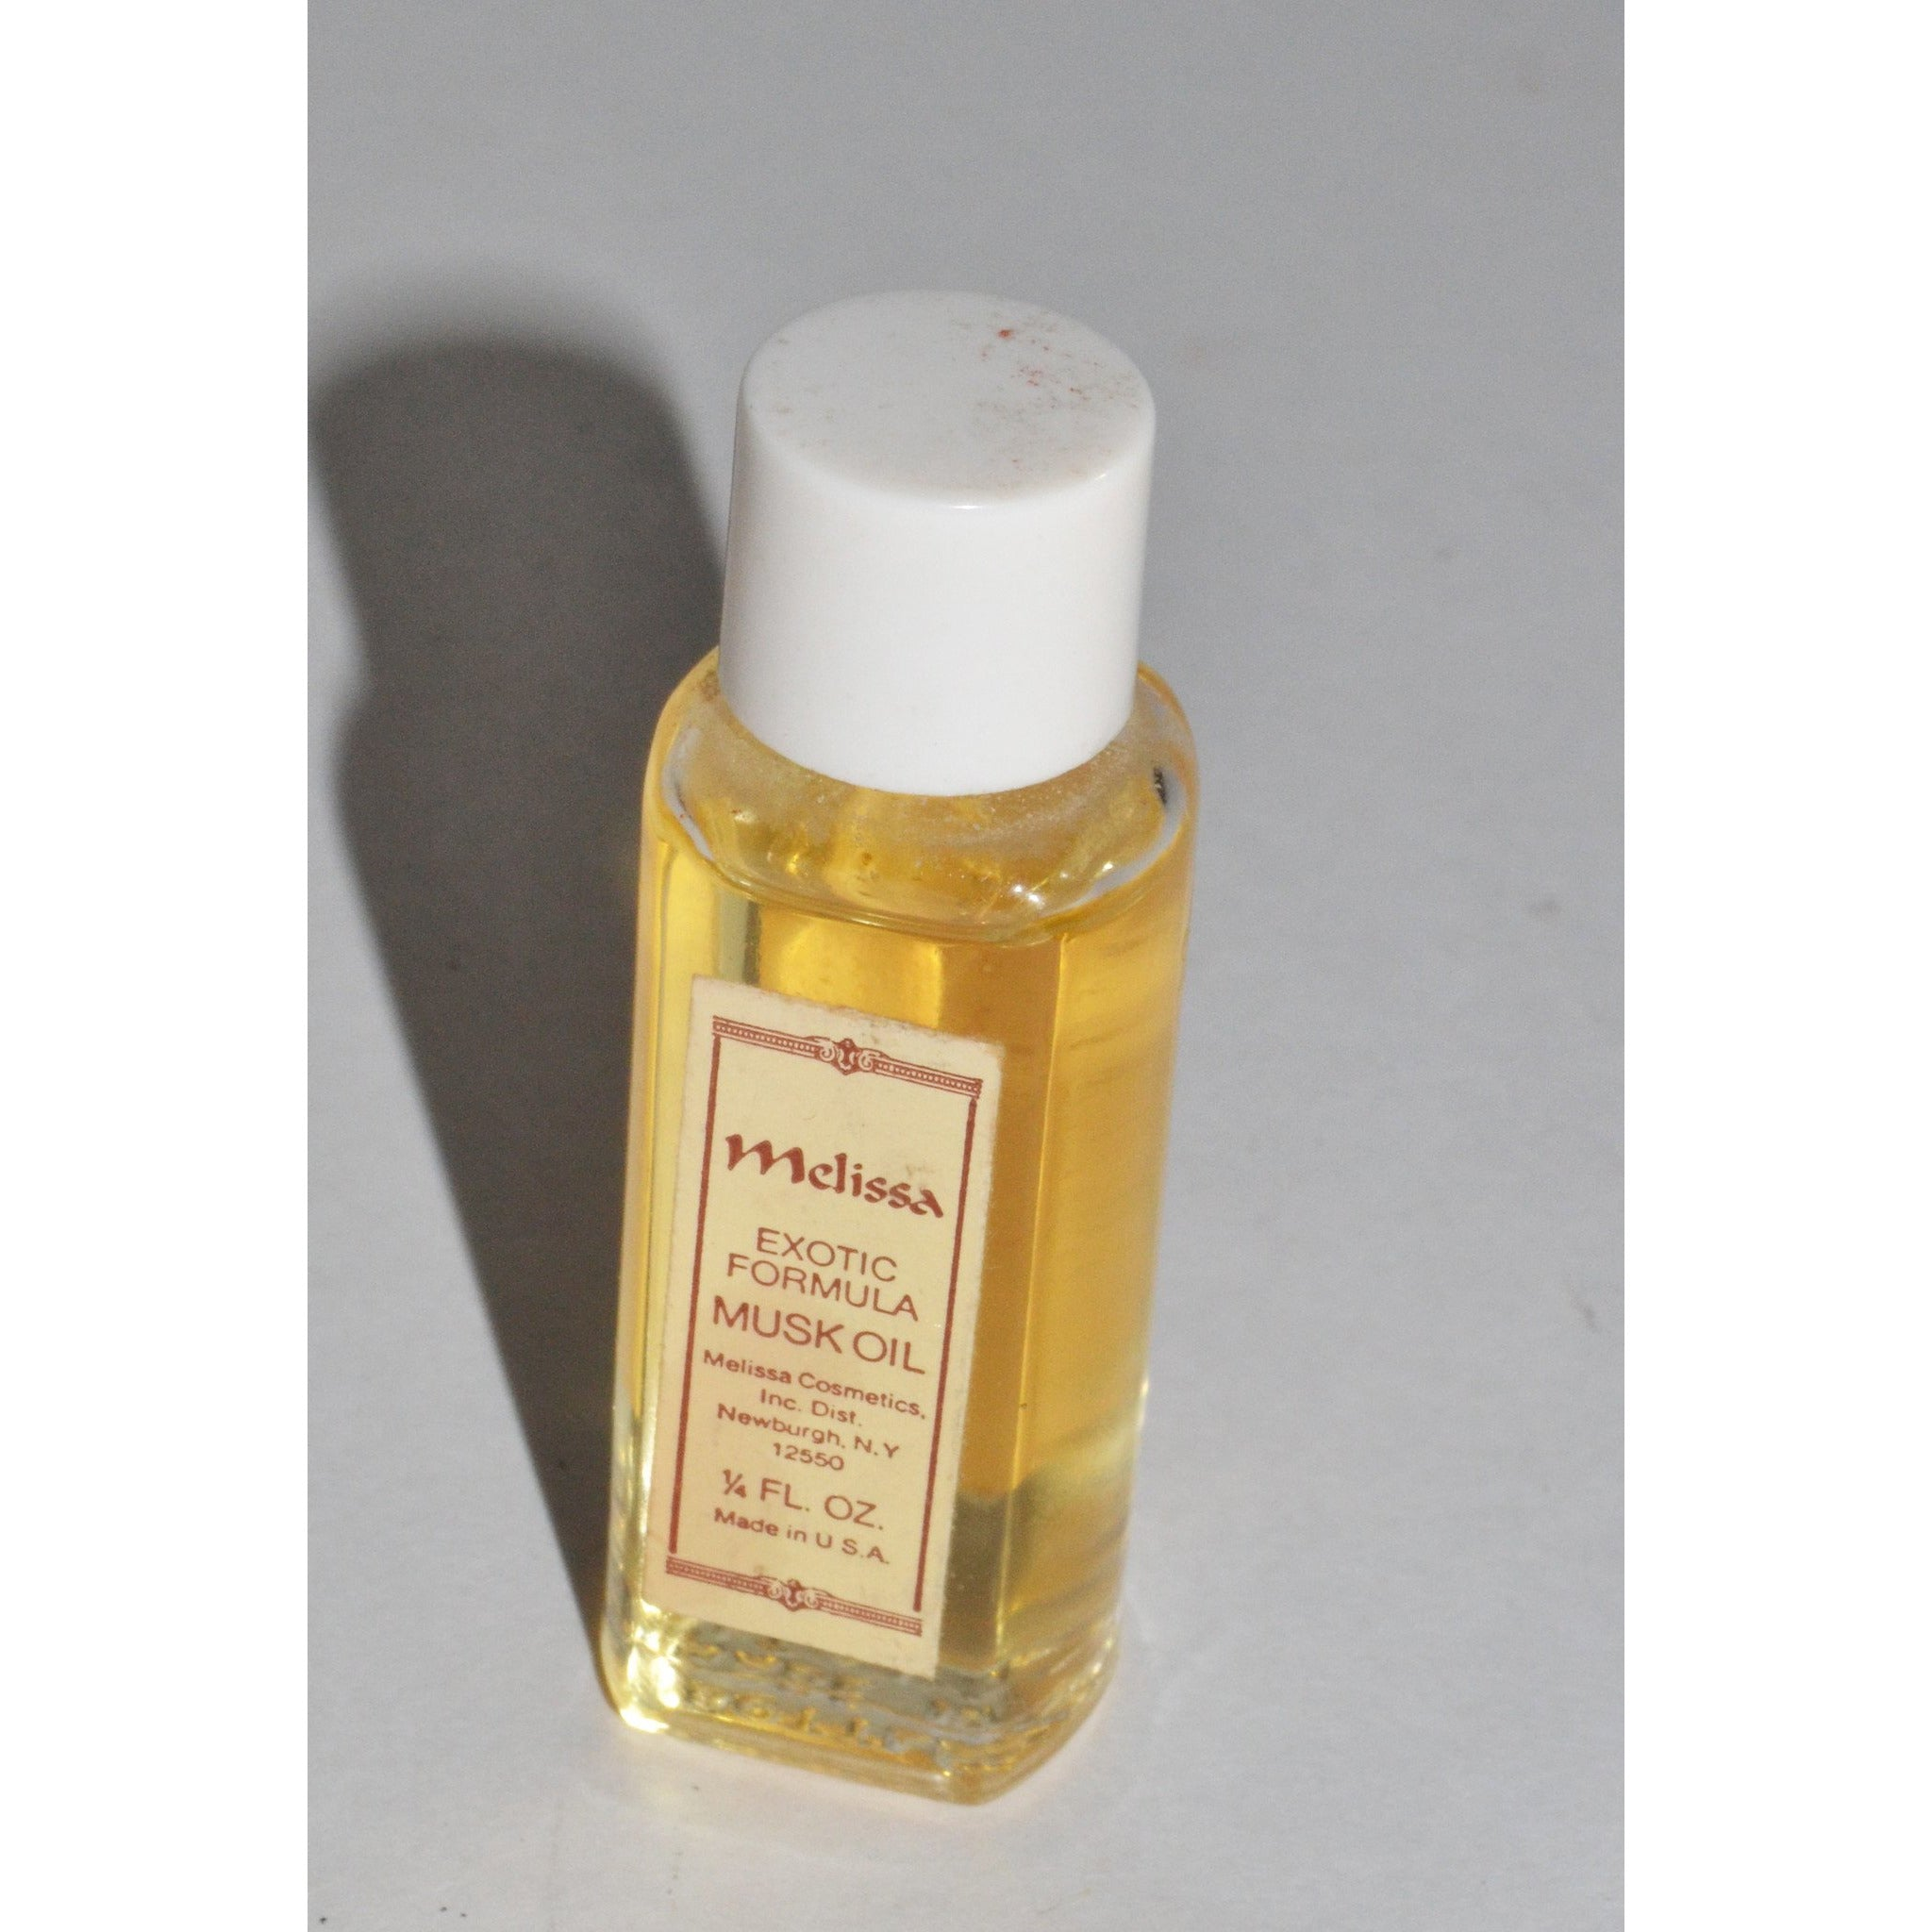 Vintage Exotic Formula Musk Oil By Melissa